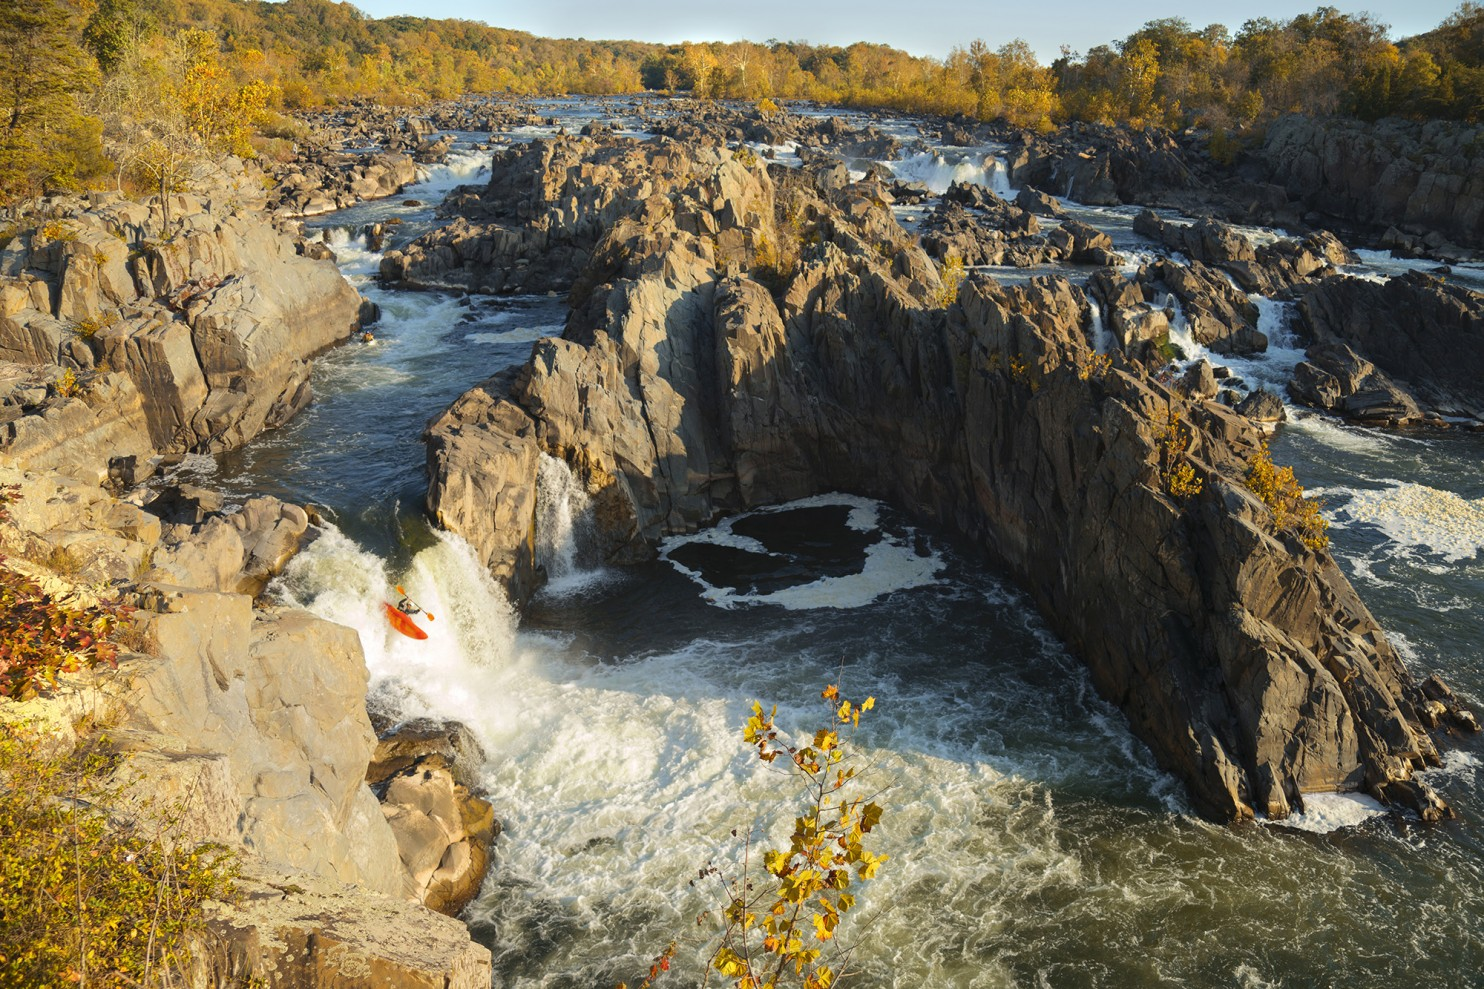 Kayaking Great Falls during autumn, October 23, 2016. Photo credit: Kevin Ambrose